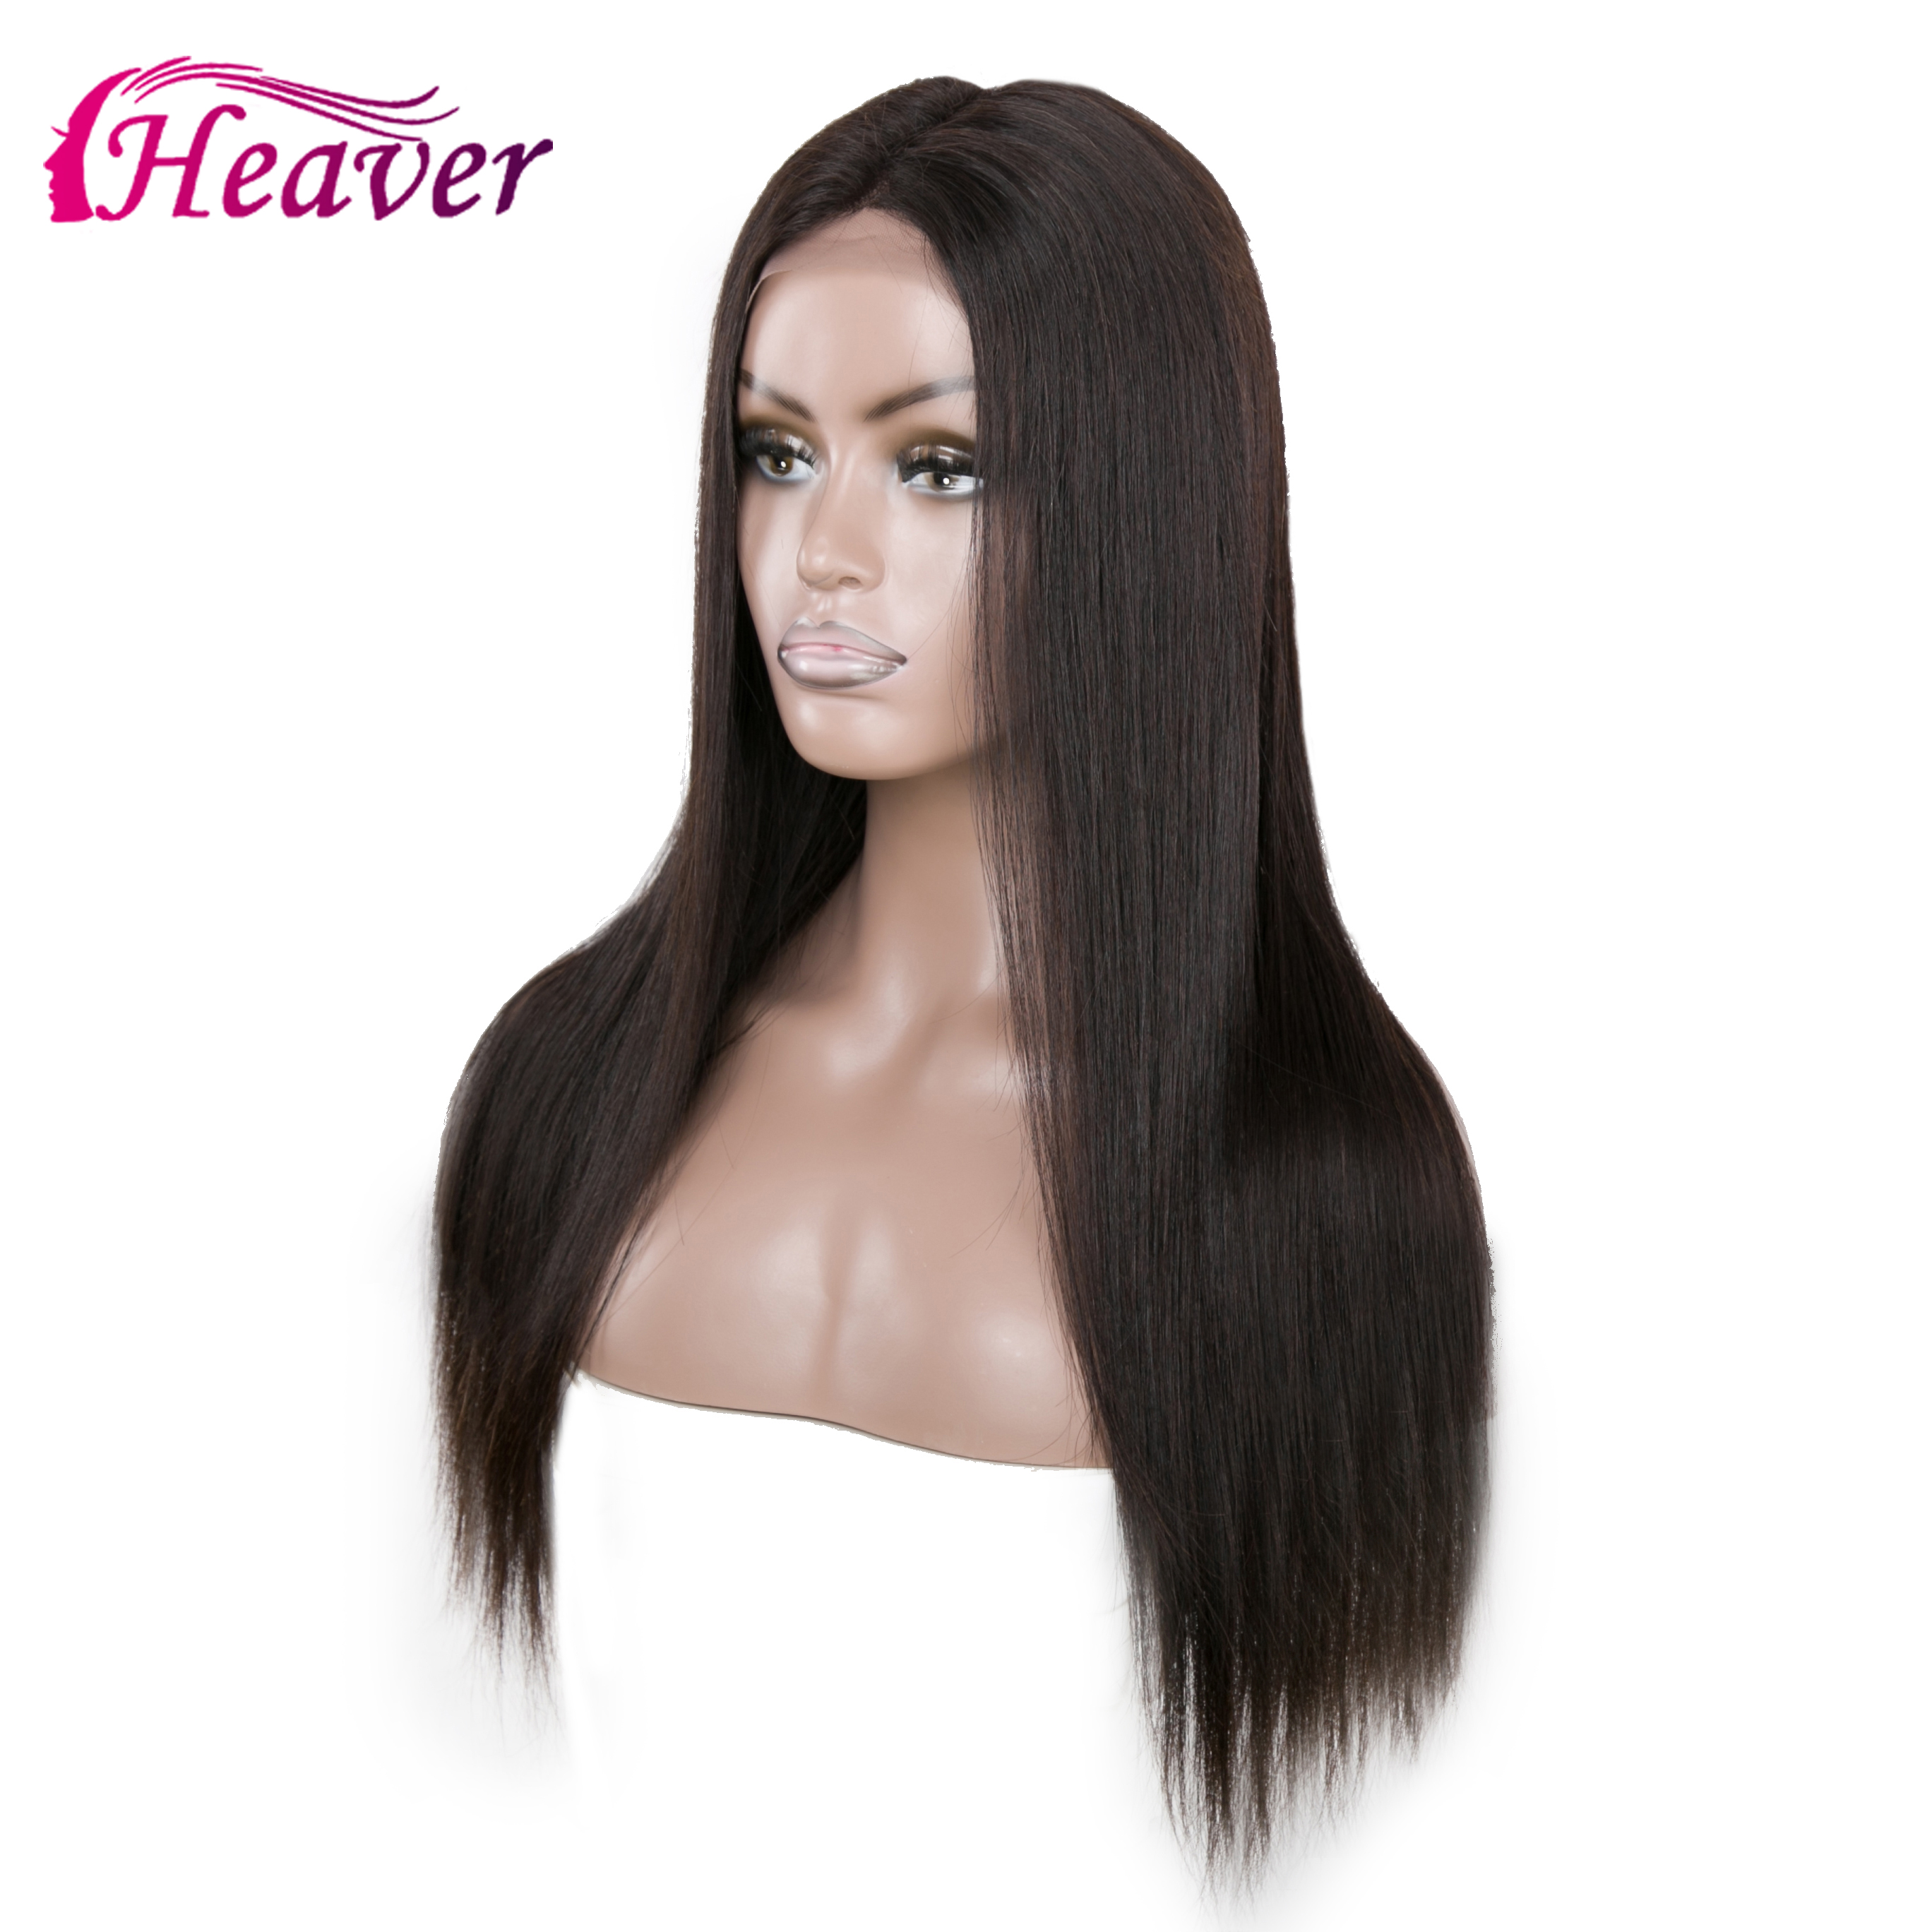 Haever 13X4 Lace Closure Wig Pre-Plucked 180% Lace New Hair Human Hair Wigs Virgin Brazilian Straight Silk For Black Women